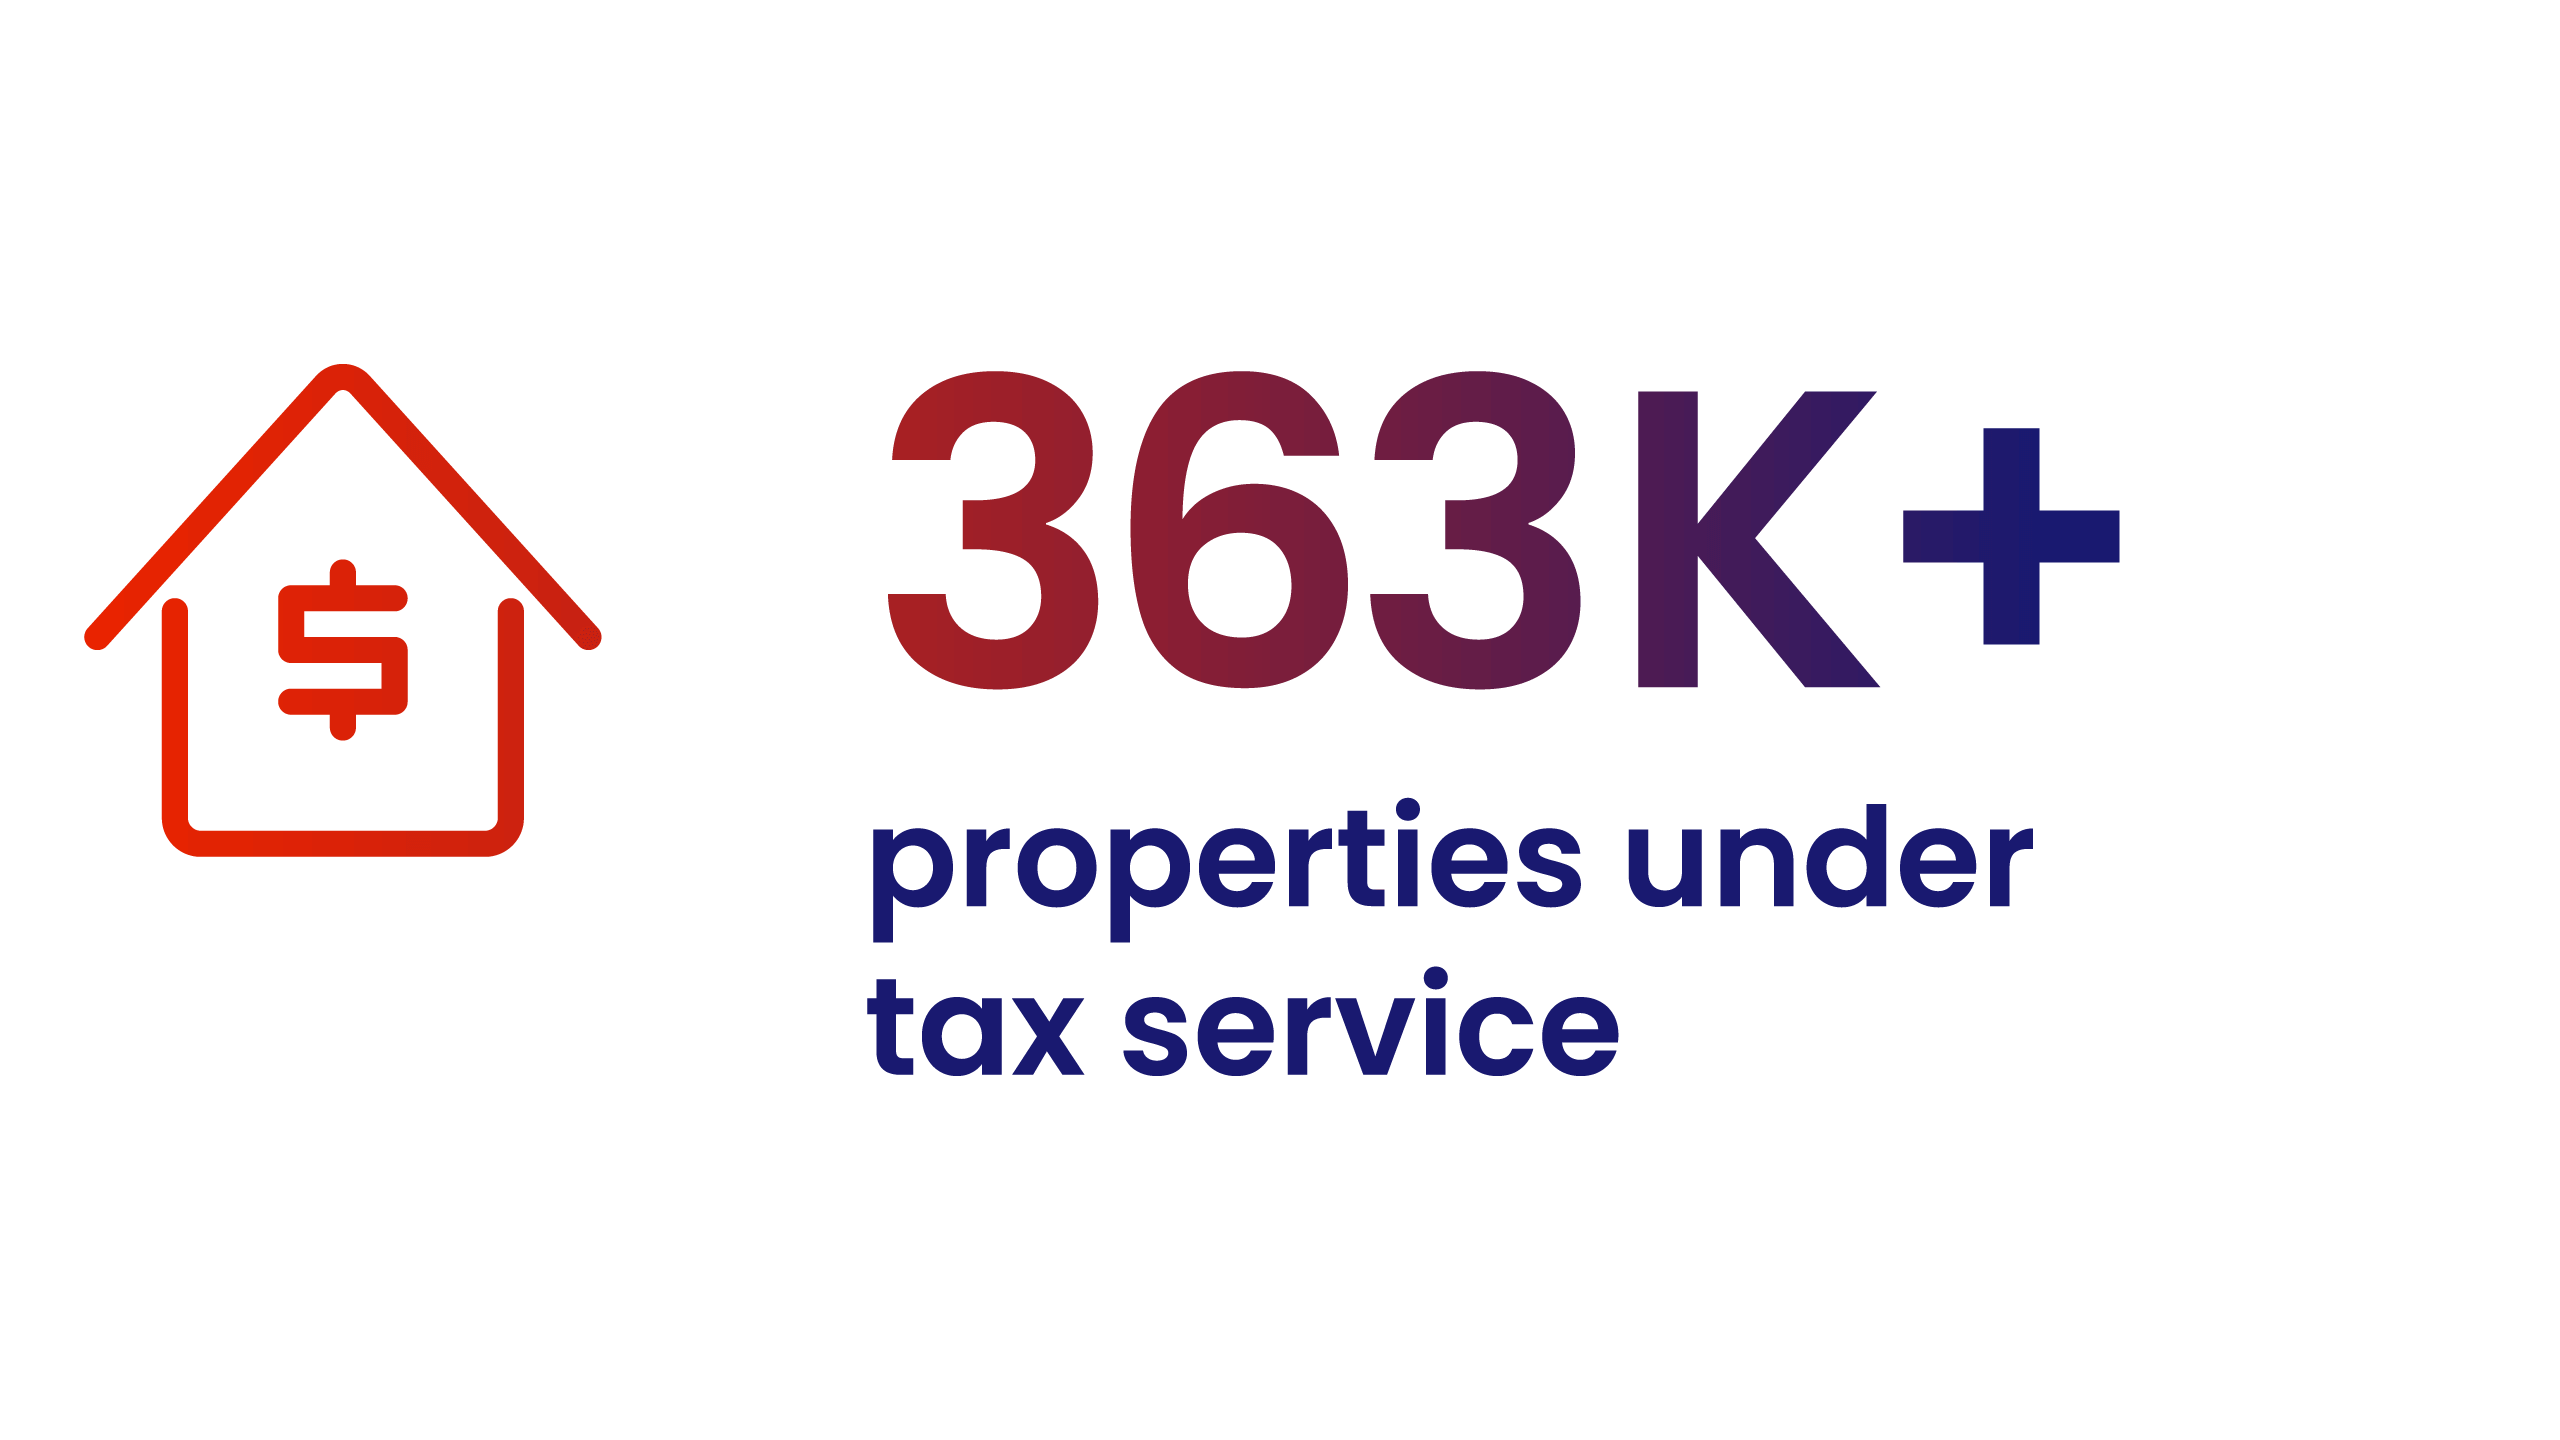 """CoreLogic Commercial Tax Solutions - infographic """"363K+ properties under tax service"""""""